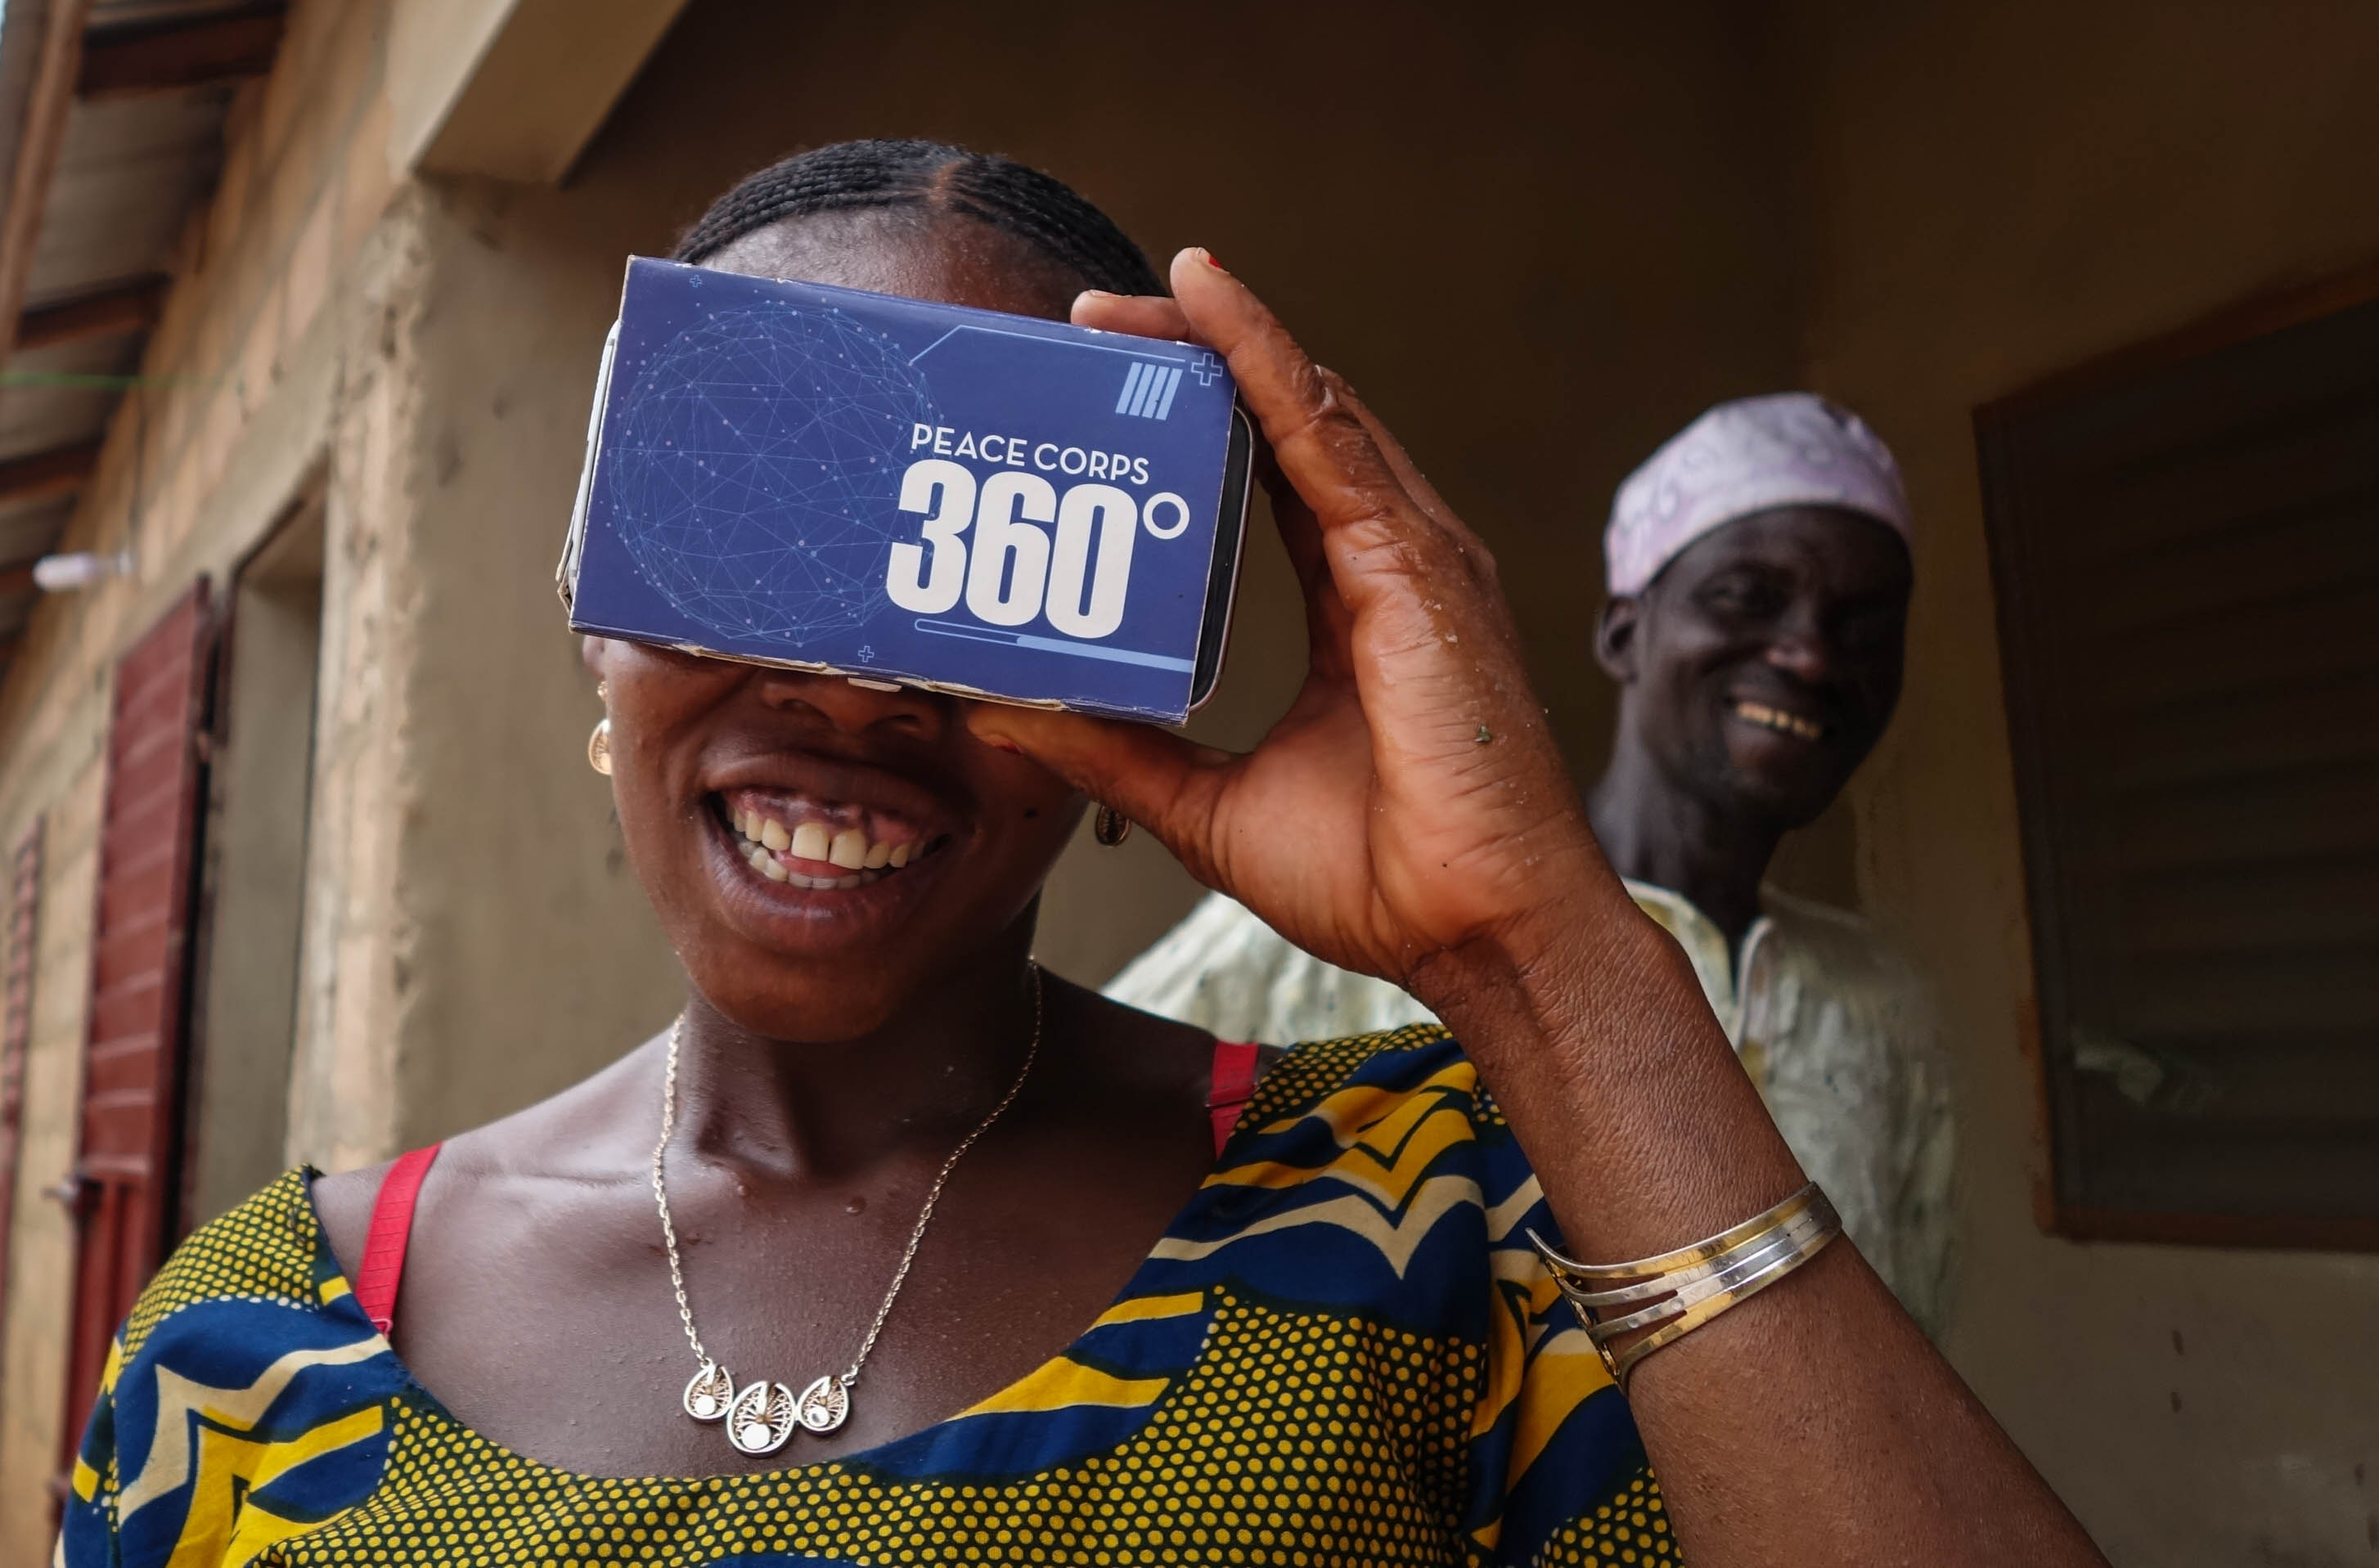 Peace Corps 360° virtual reality, Jake Meyers, Peace Corps Benin